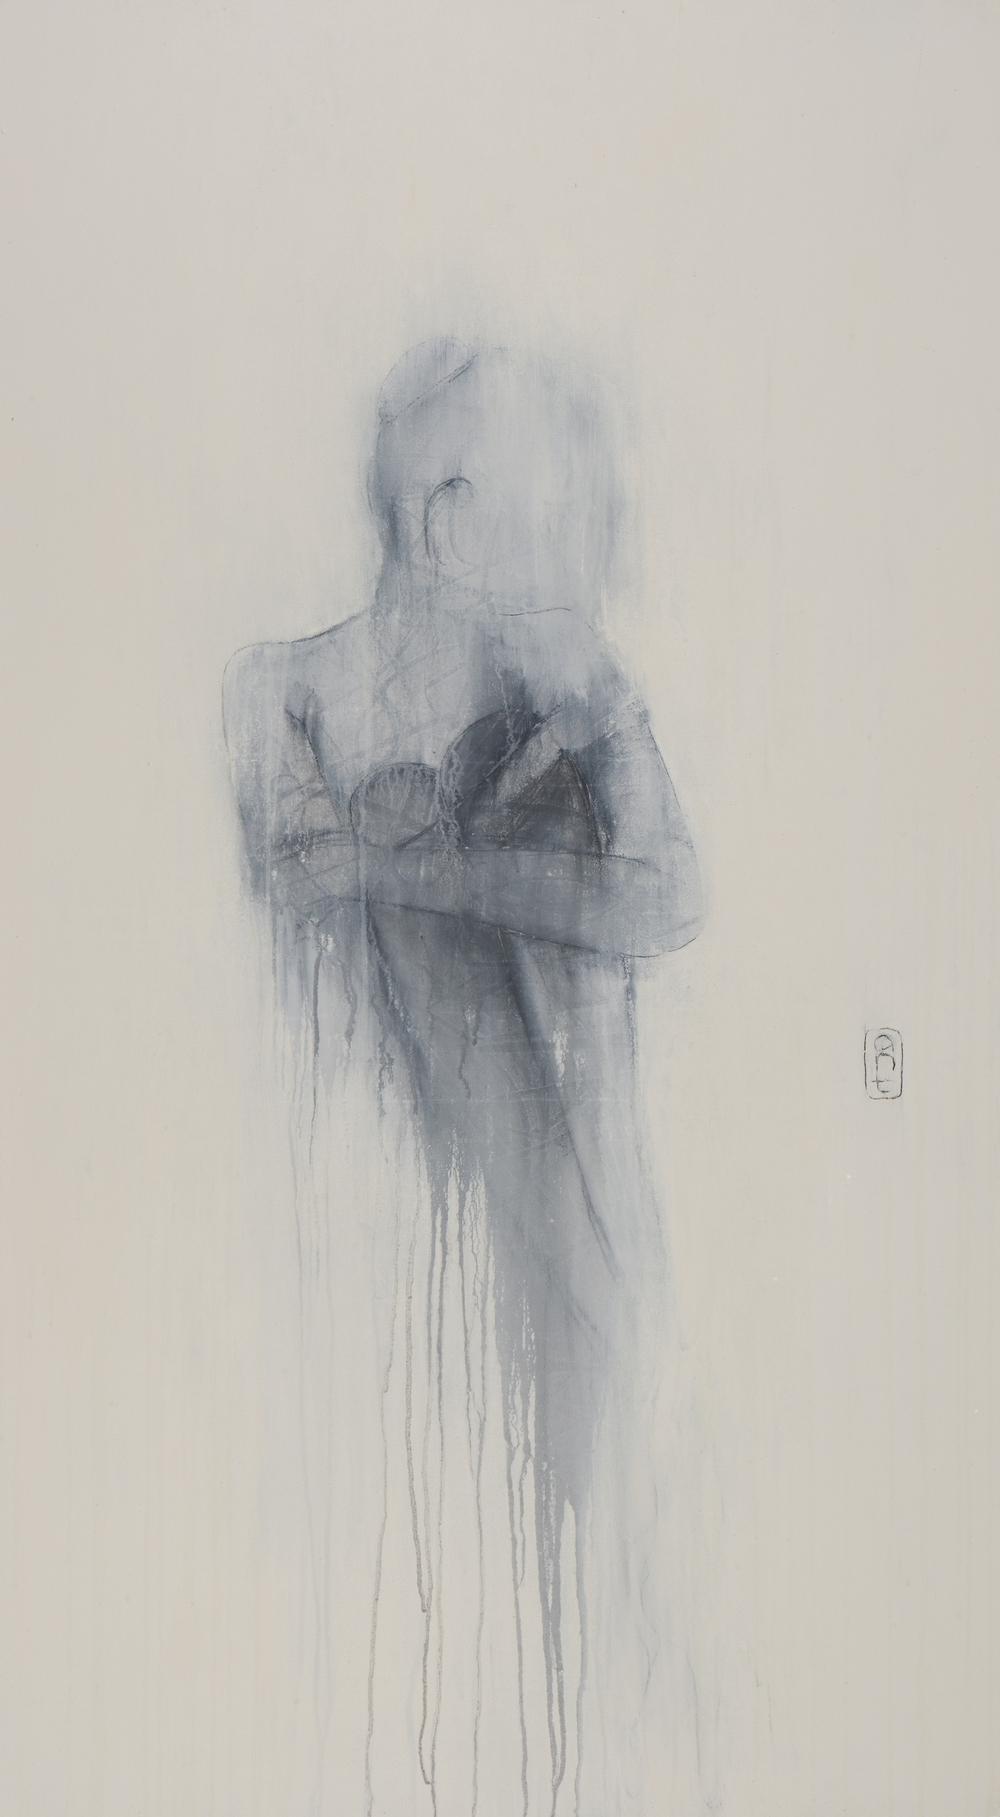 SOLD 2008 Sitting Series - Sitting in thought Gesso, Pigment & Charcoal on canvas 1360 x 760mm